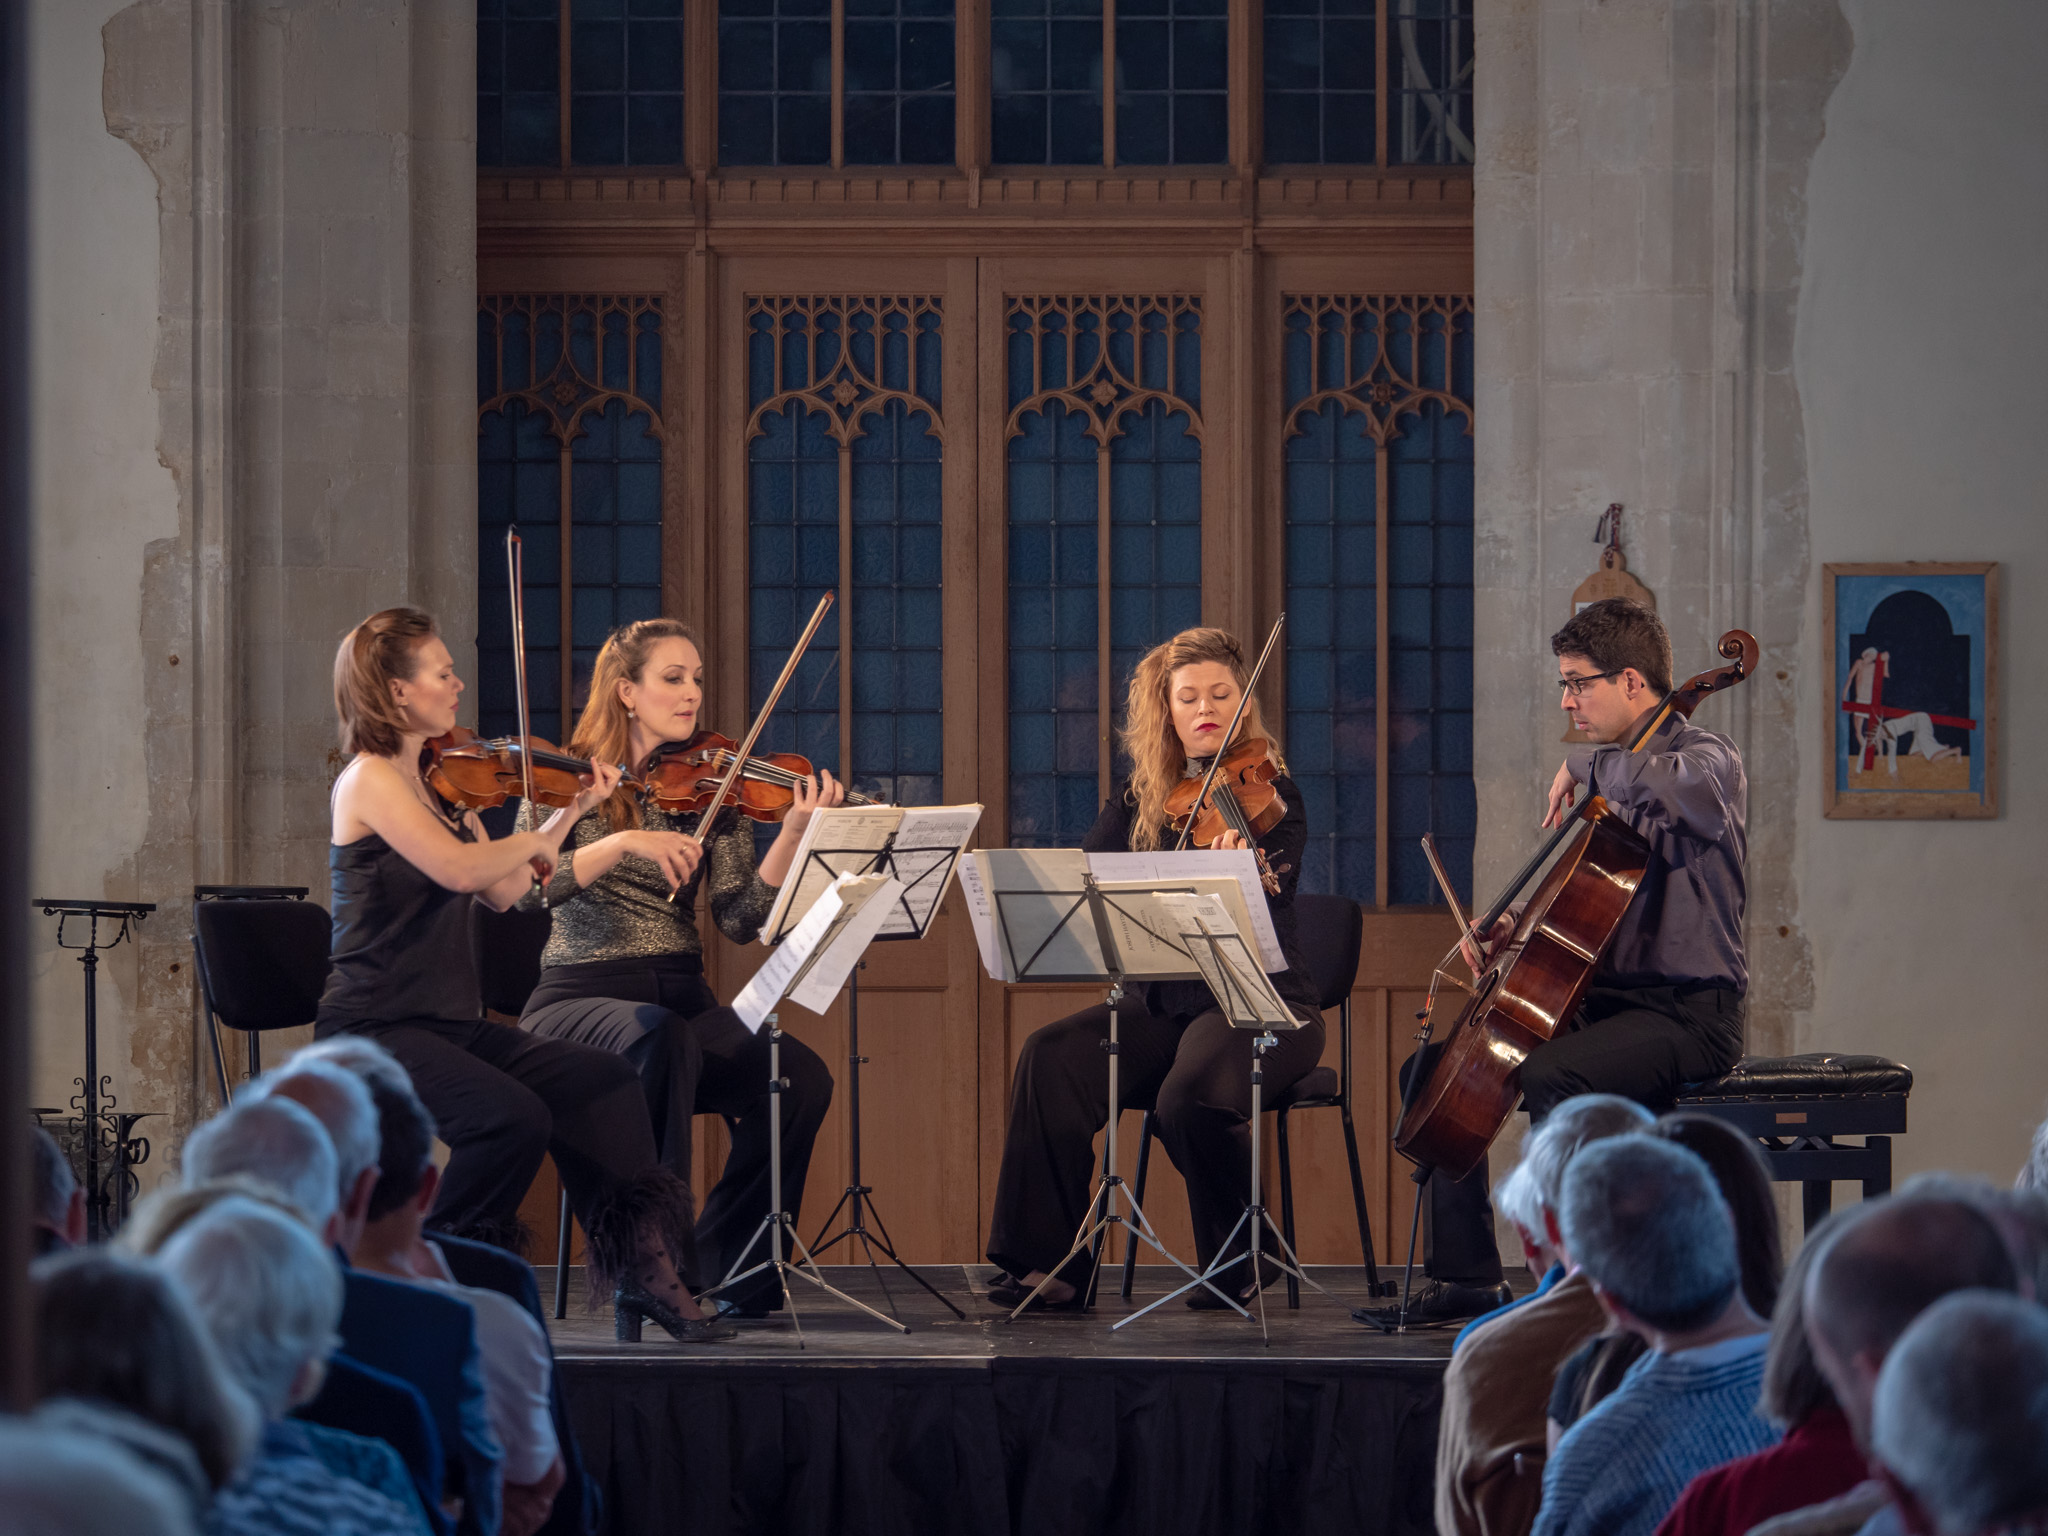 Albion-Quartet-perform-at-Orford-Church-as-part-of-Aldeburgh-Fesitval-2019-11Jun2019-4-2